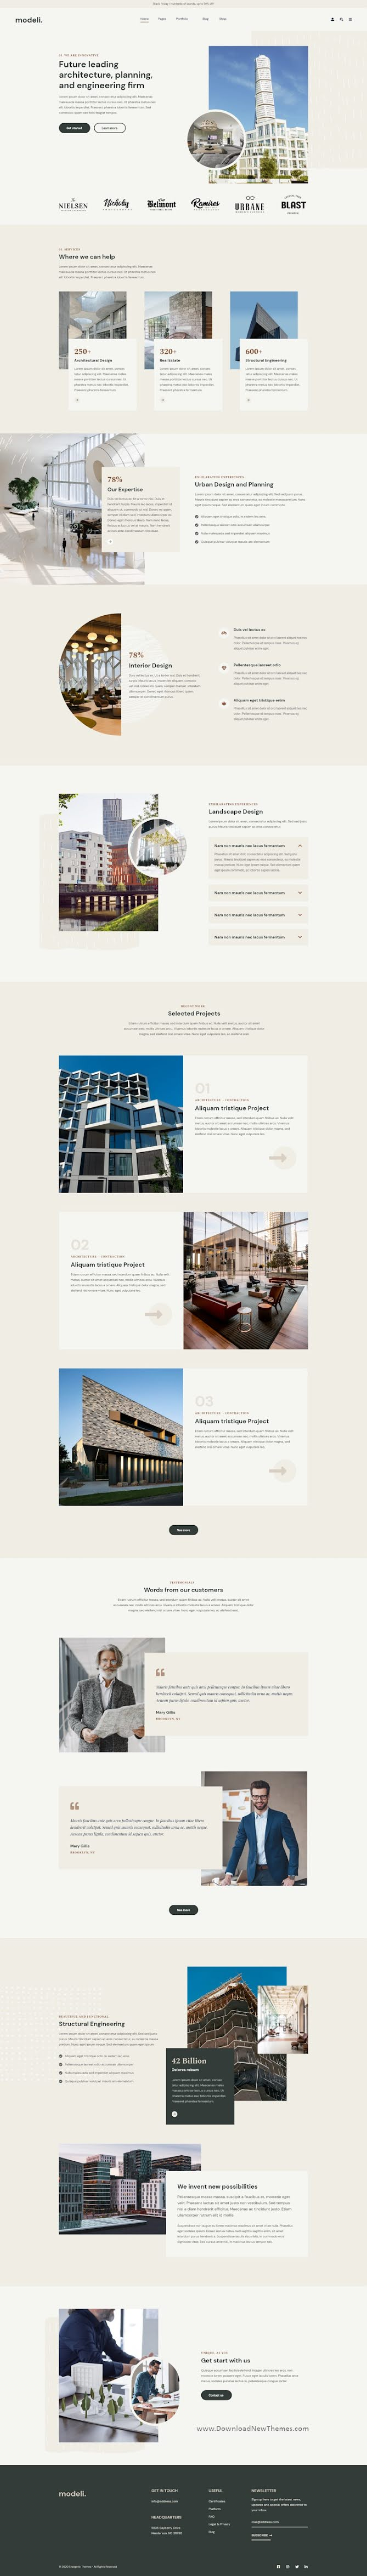 Modeli - Architecture and Engineering Adobe XD Template